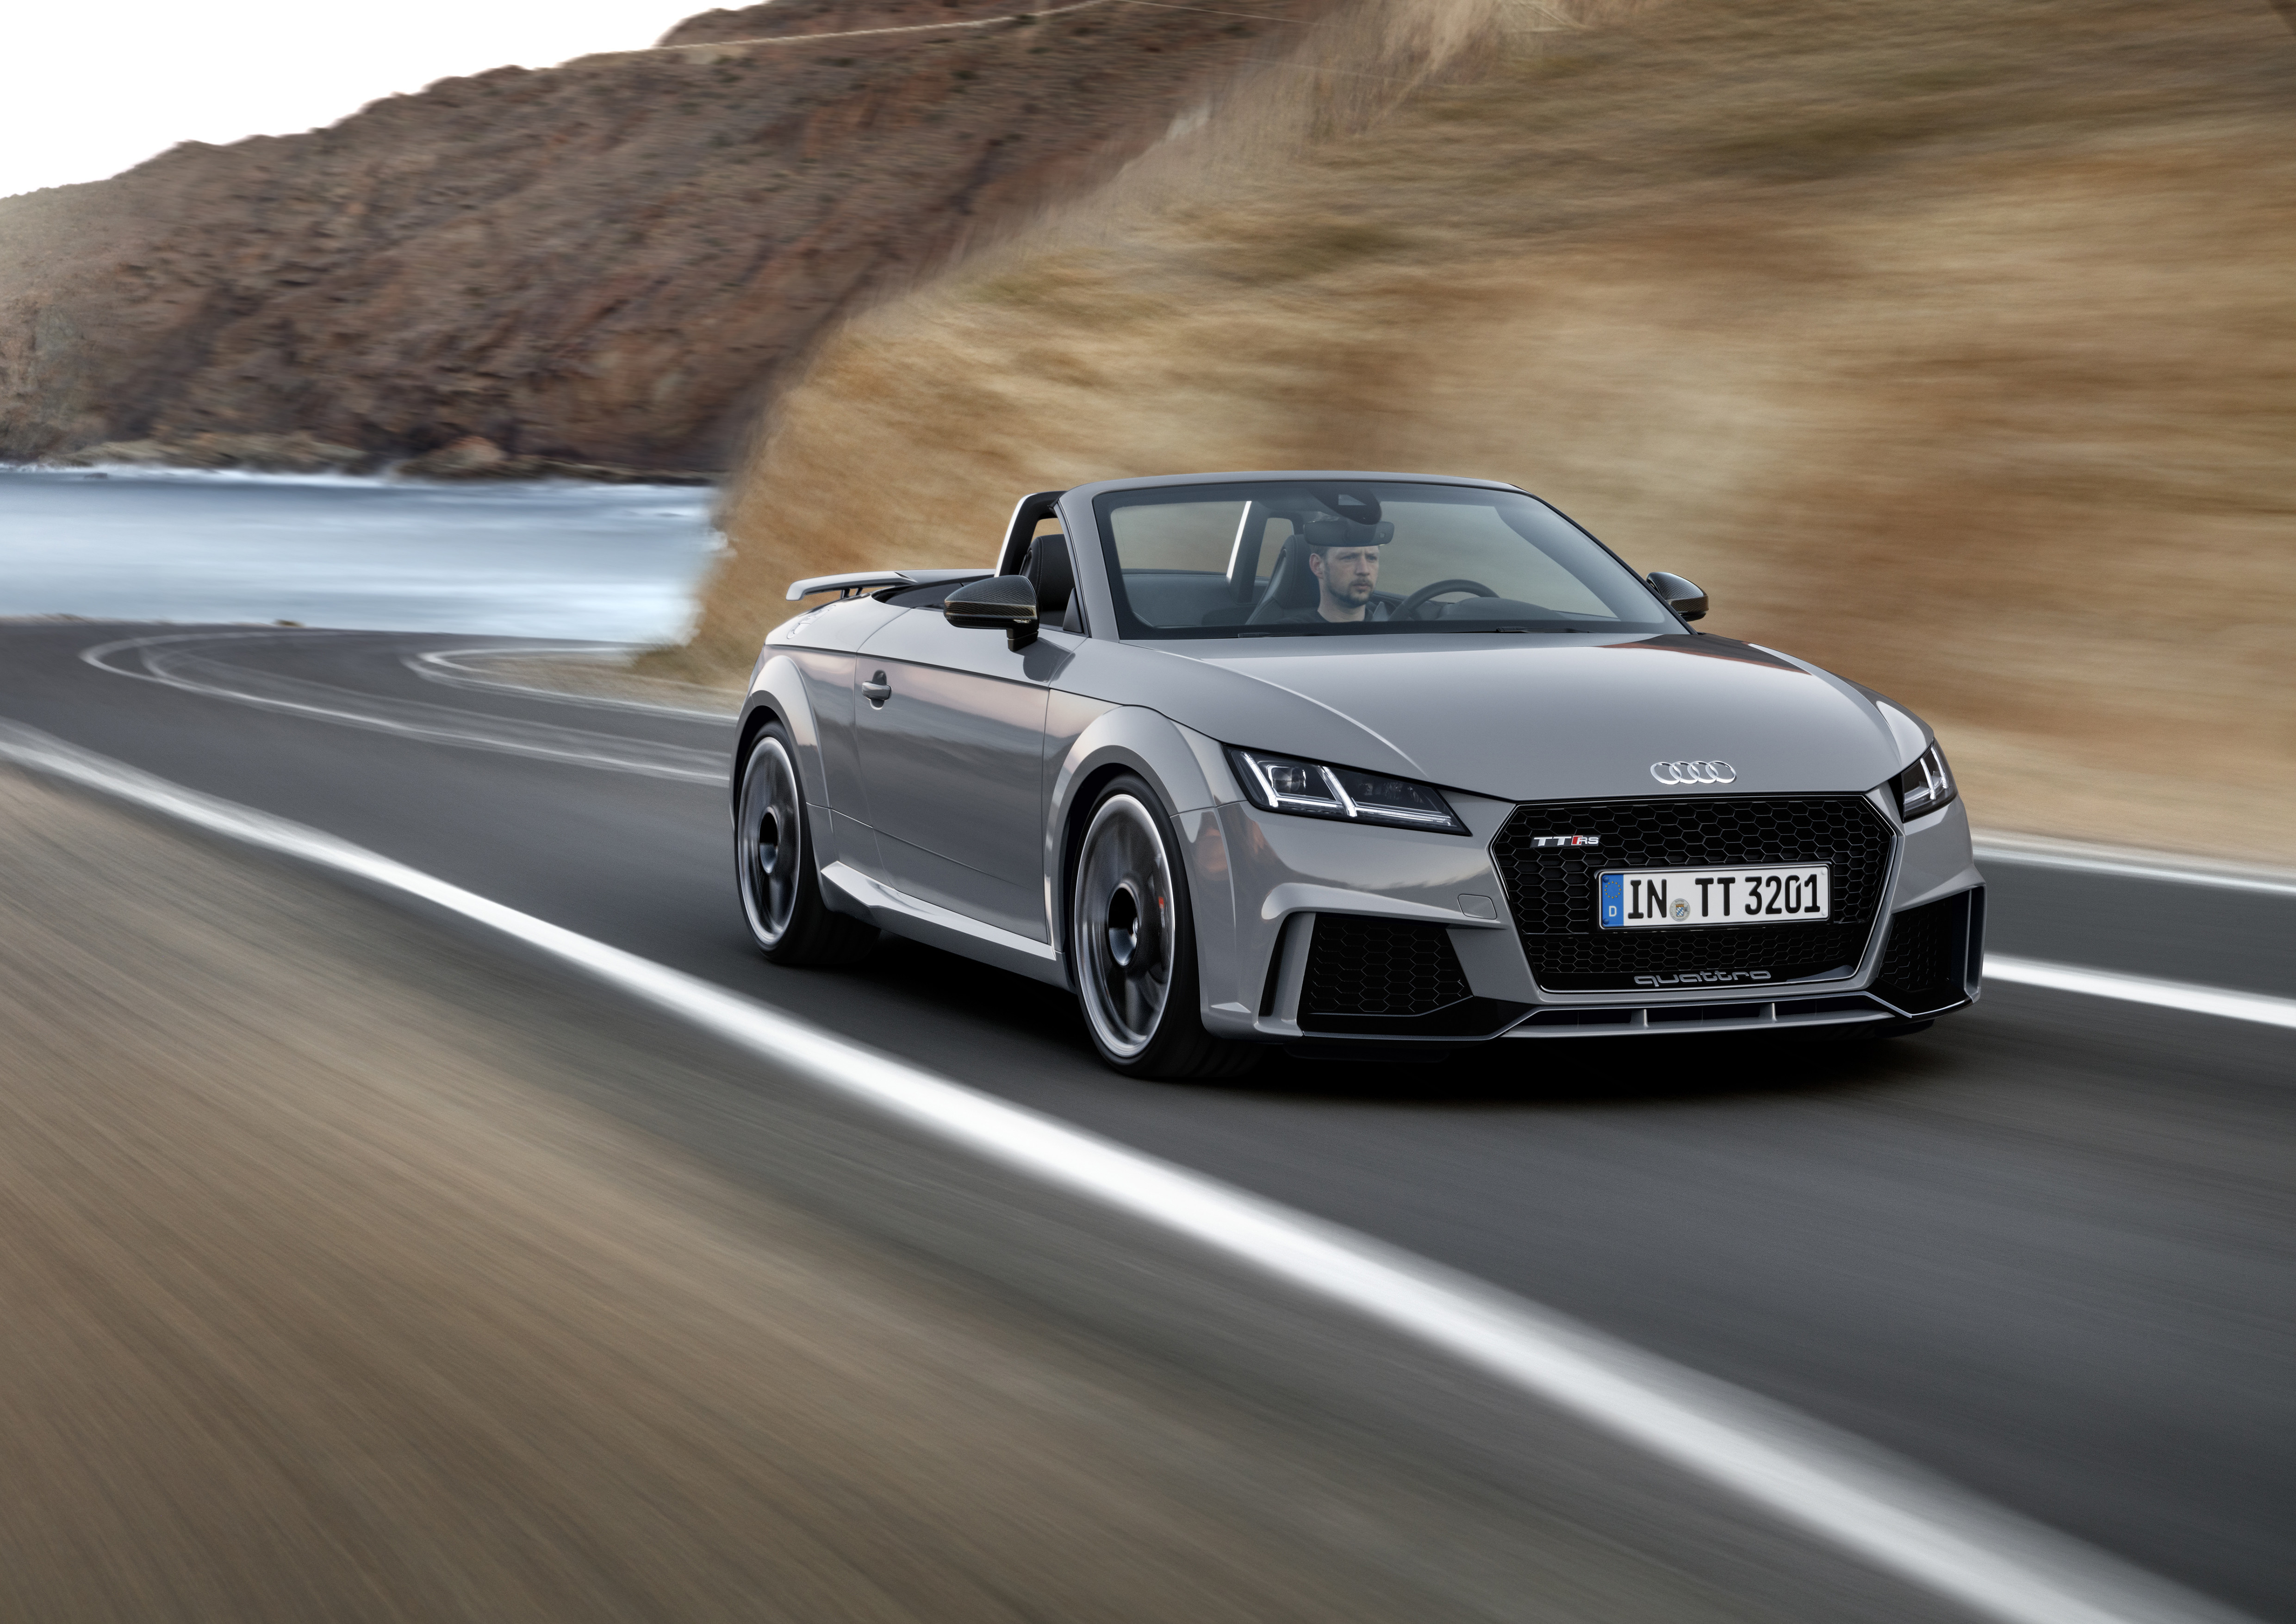 2016 Audi Tt Rs Coupe Roadster Debut With 400 Hp Paul Tan